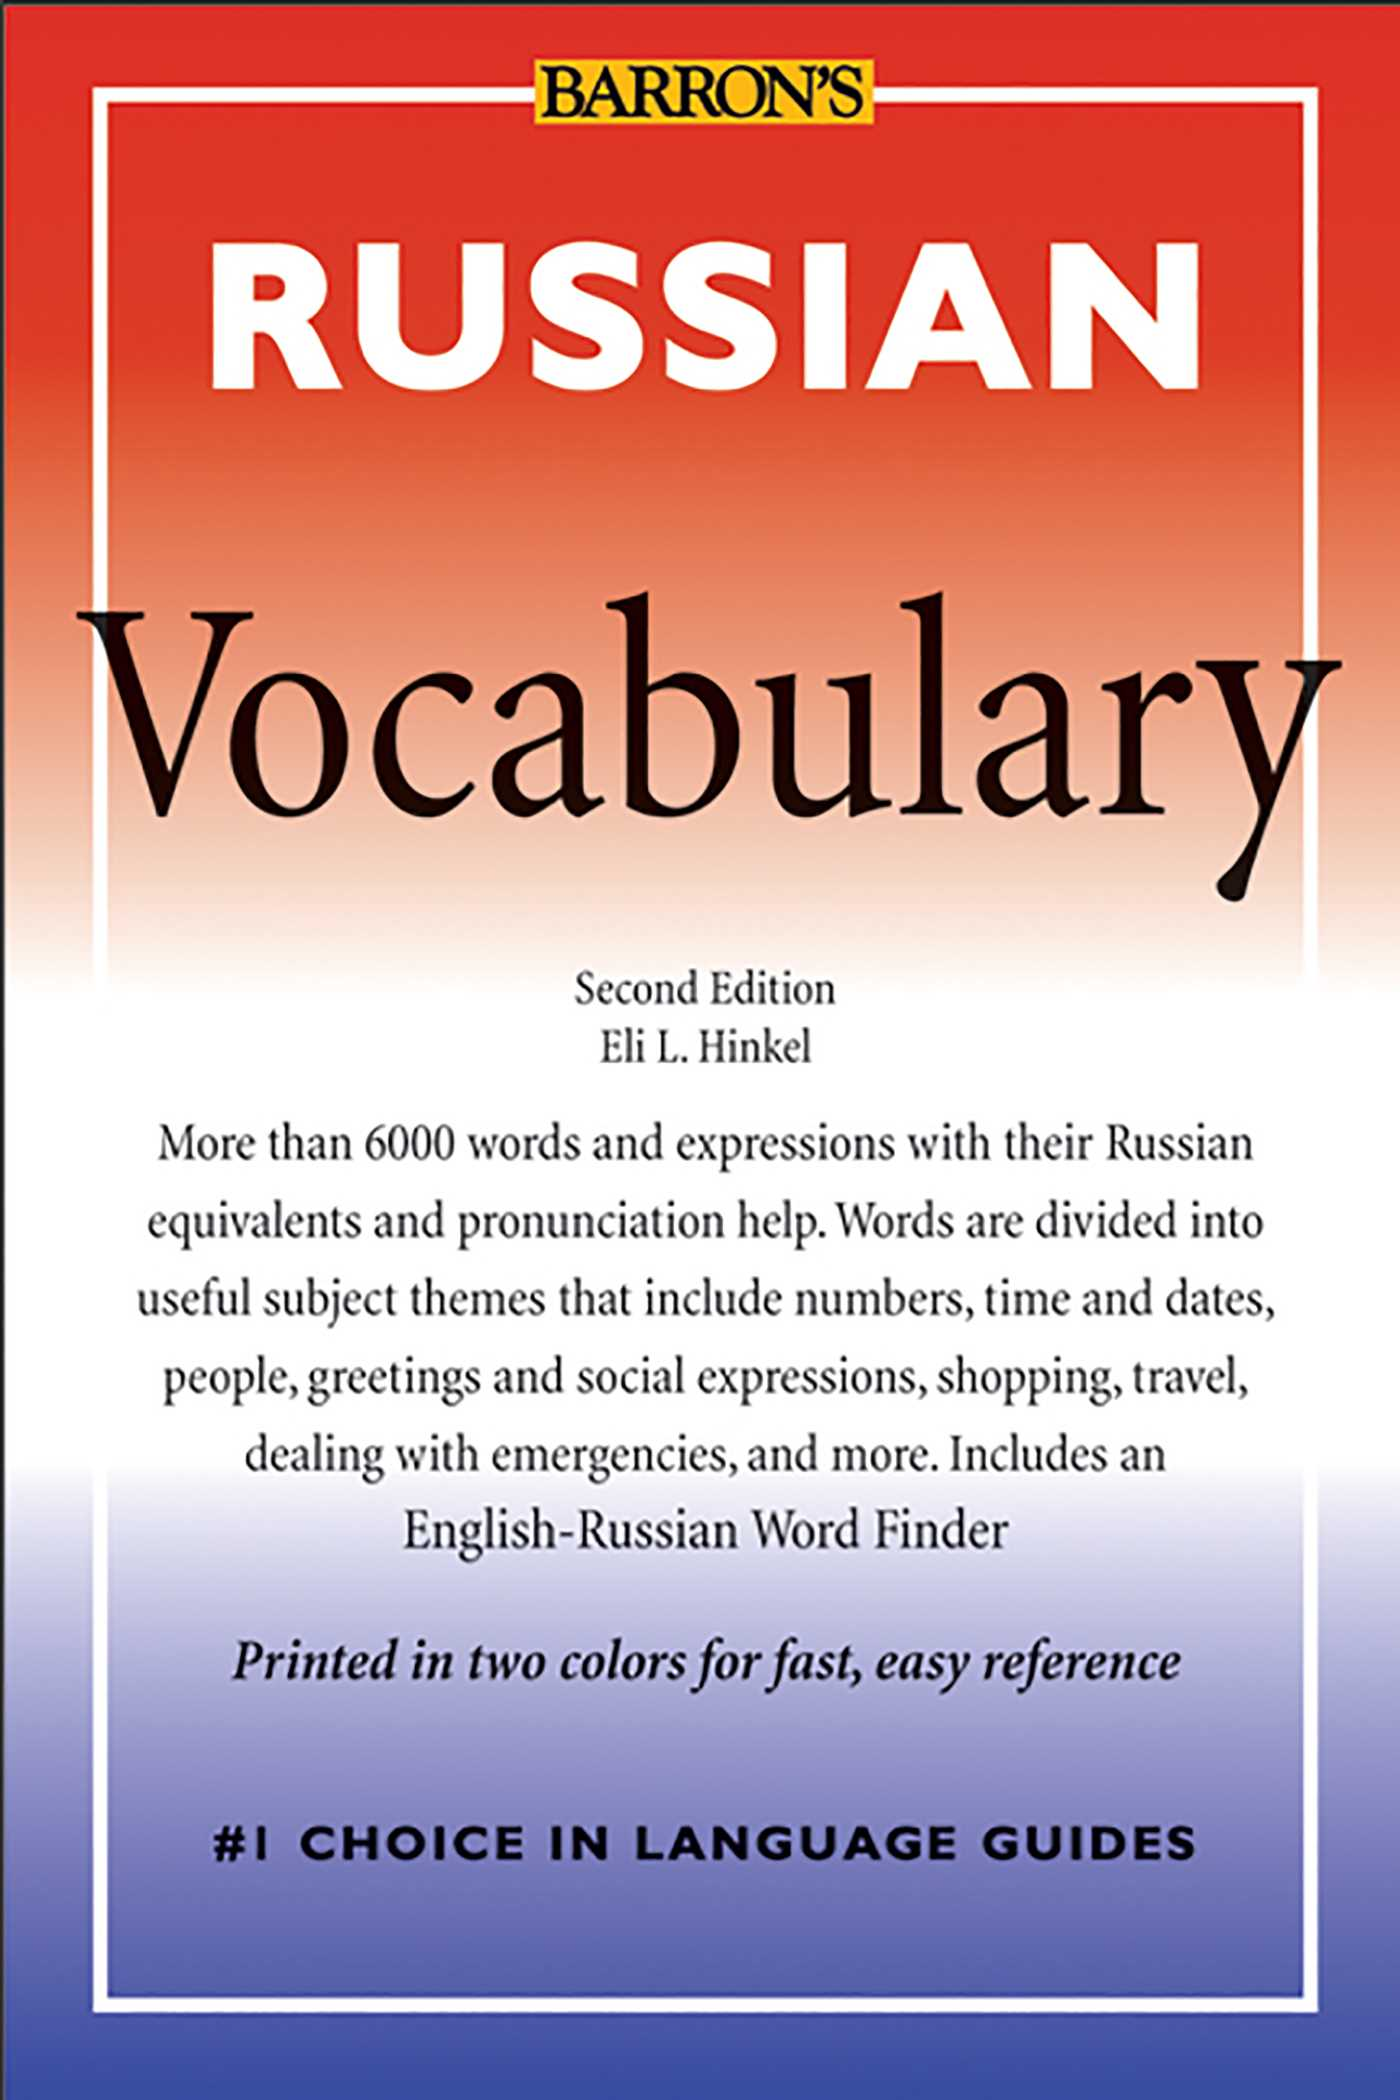 Russian vocabulary book by eli l hinkel official publisher page book cover image jpg russian vocabulary m4hsunfo